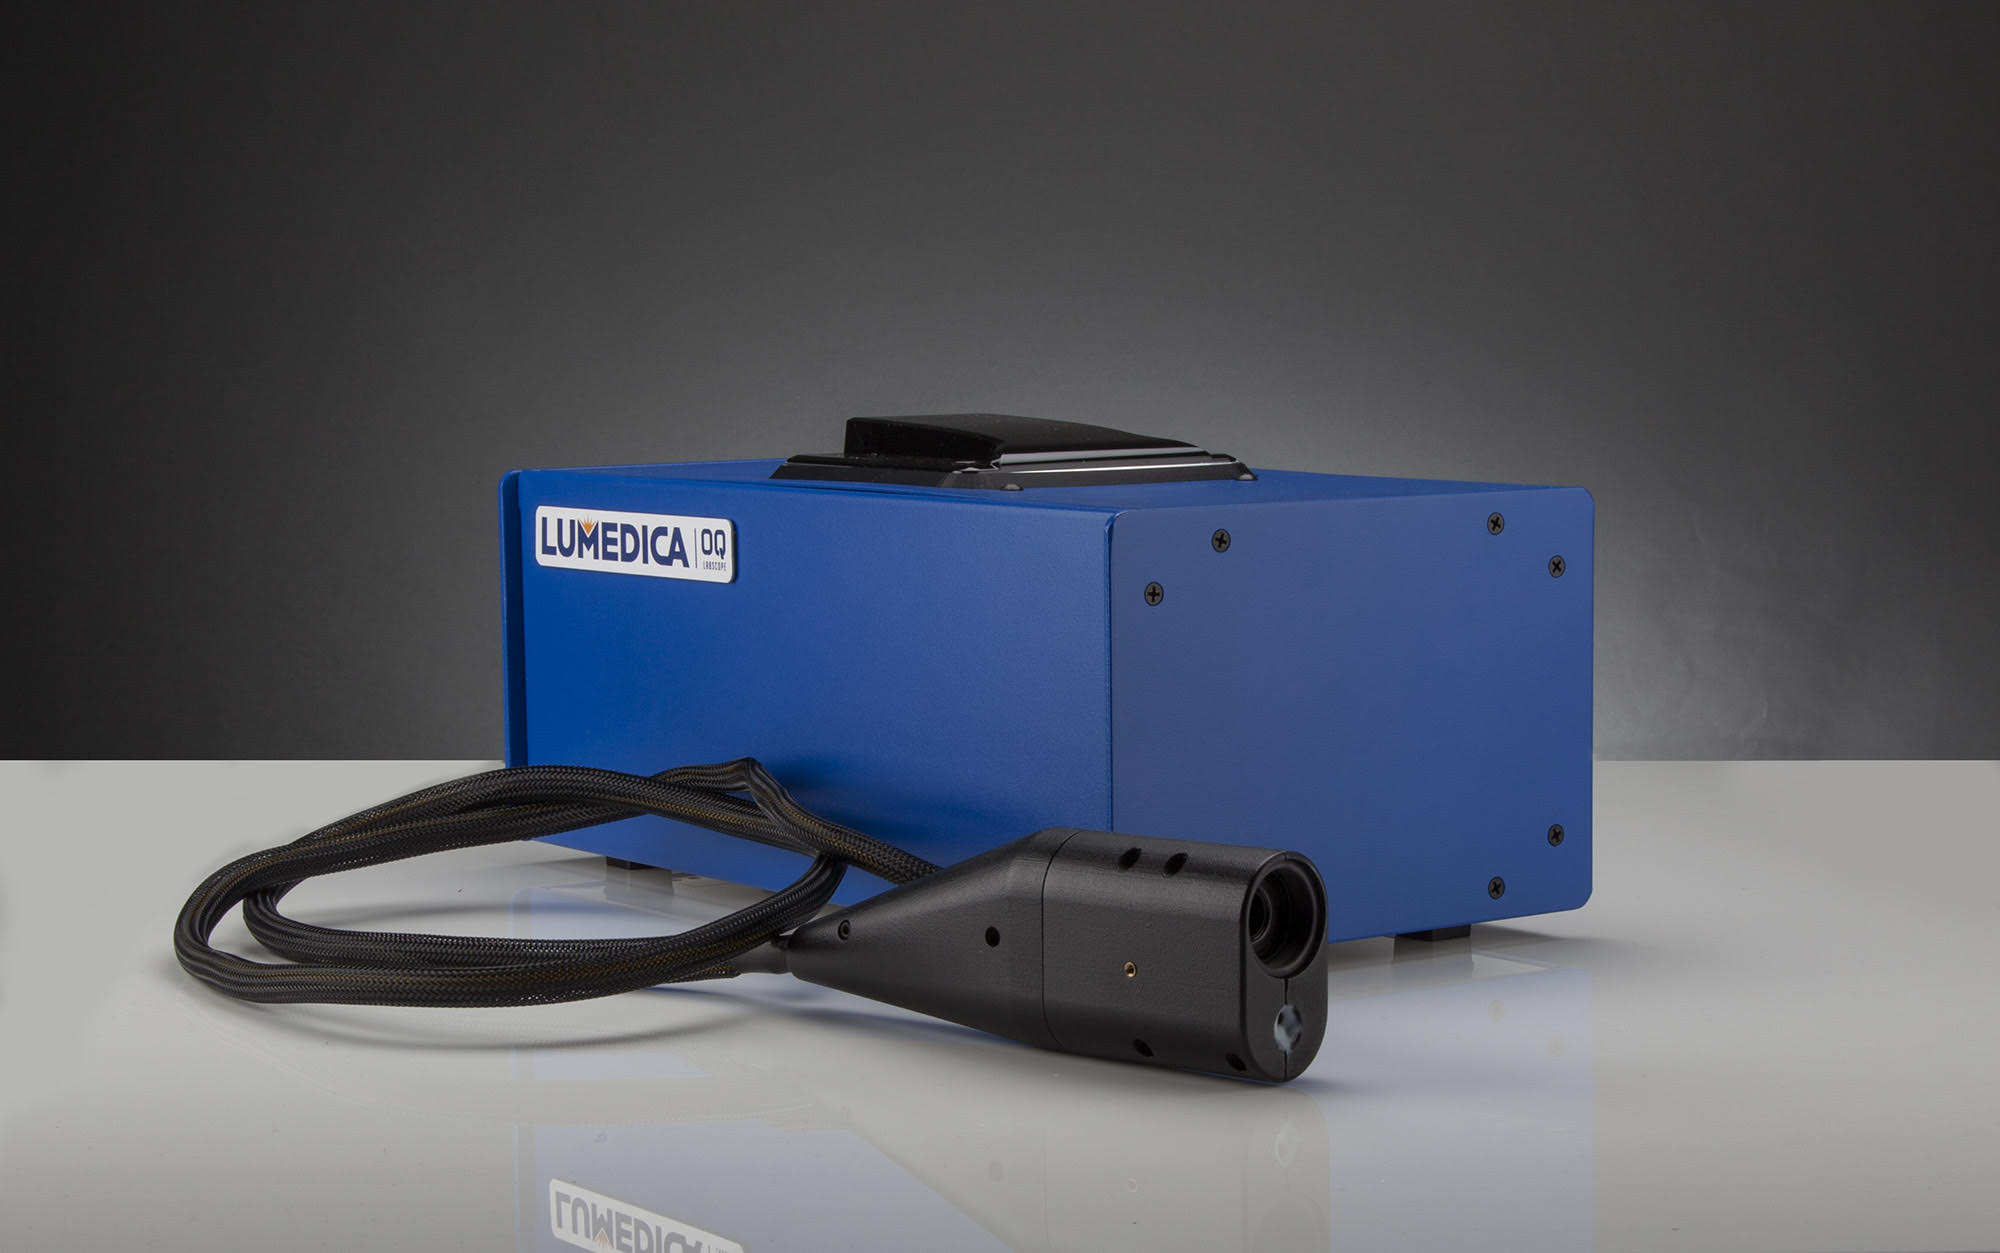 Lumedica's OQ LabScope is three to five times less expensive than the other portable OCT tools